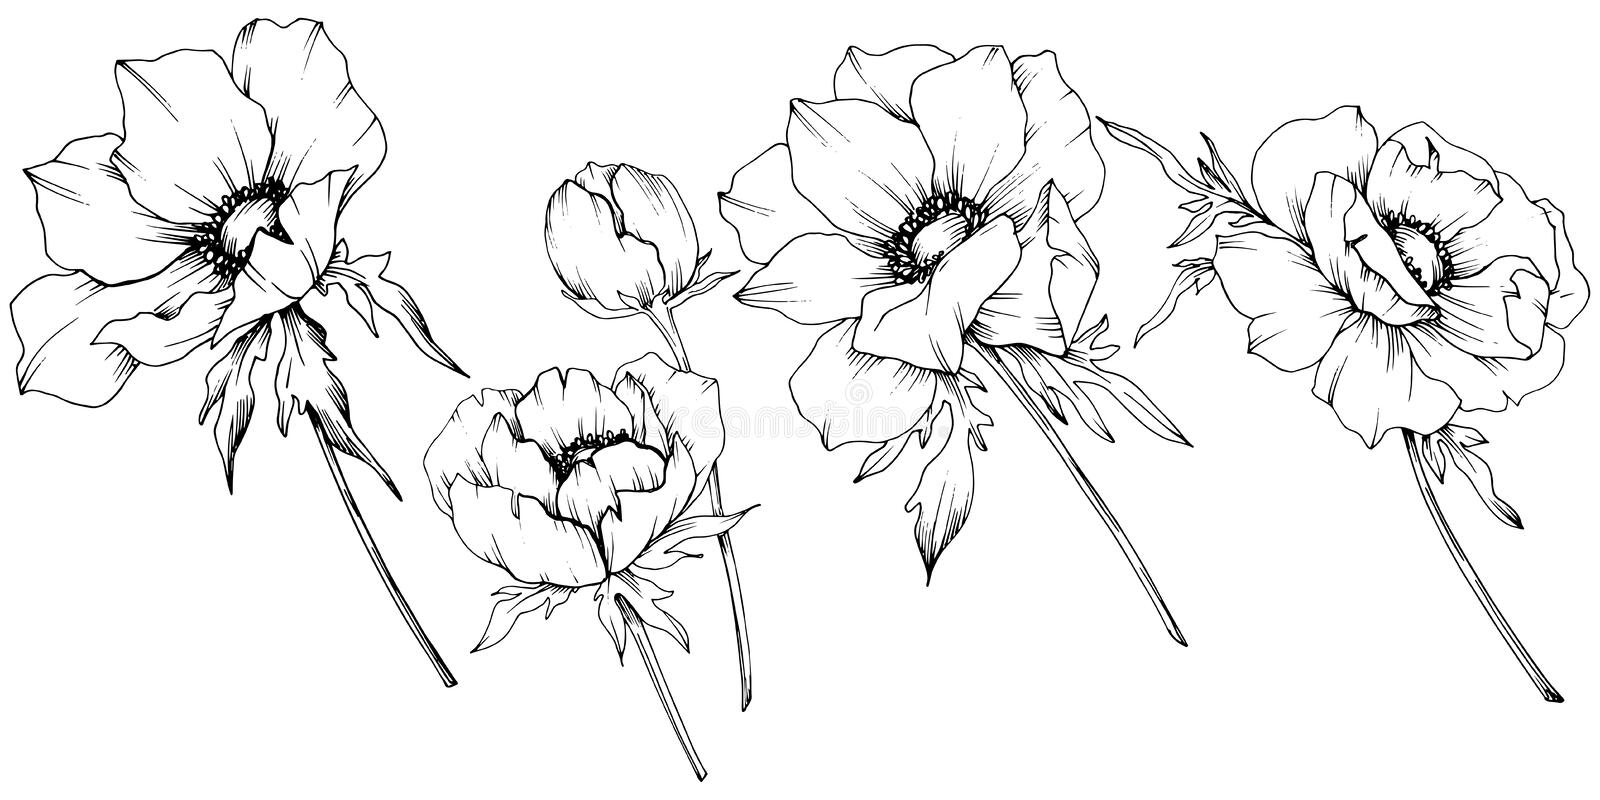 Vector Anemone floral botanical flowers. Black and white engraved ink art. Isolated anemone illustration element. Vector Anemone floral botanical flowers. Wild vector illustration